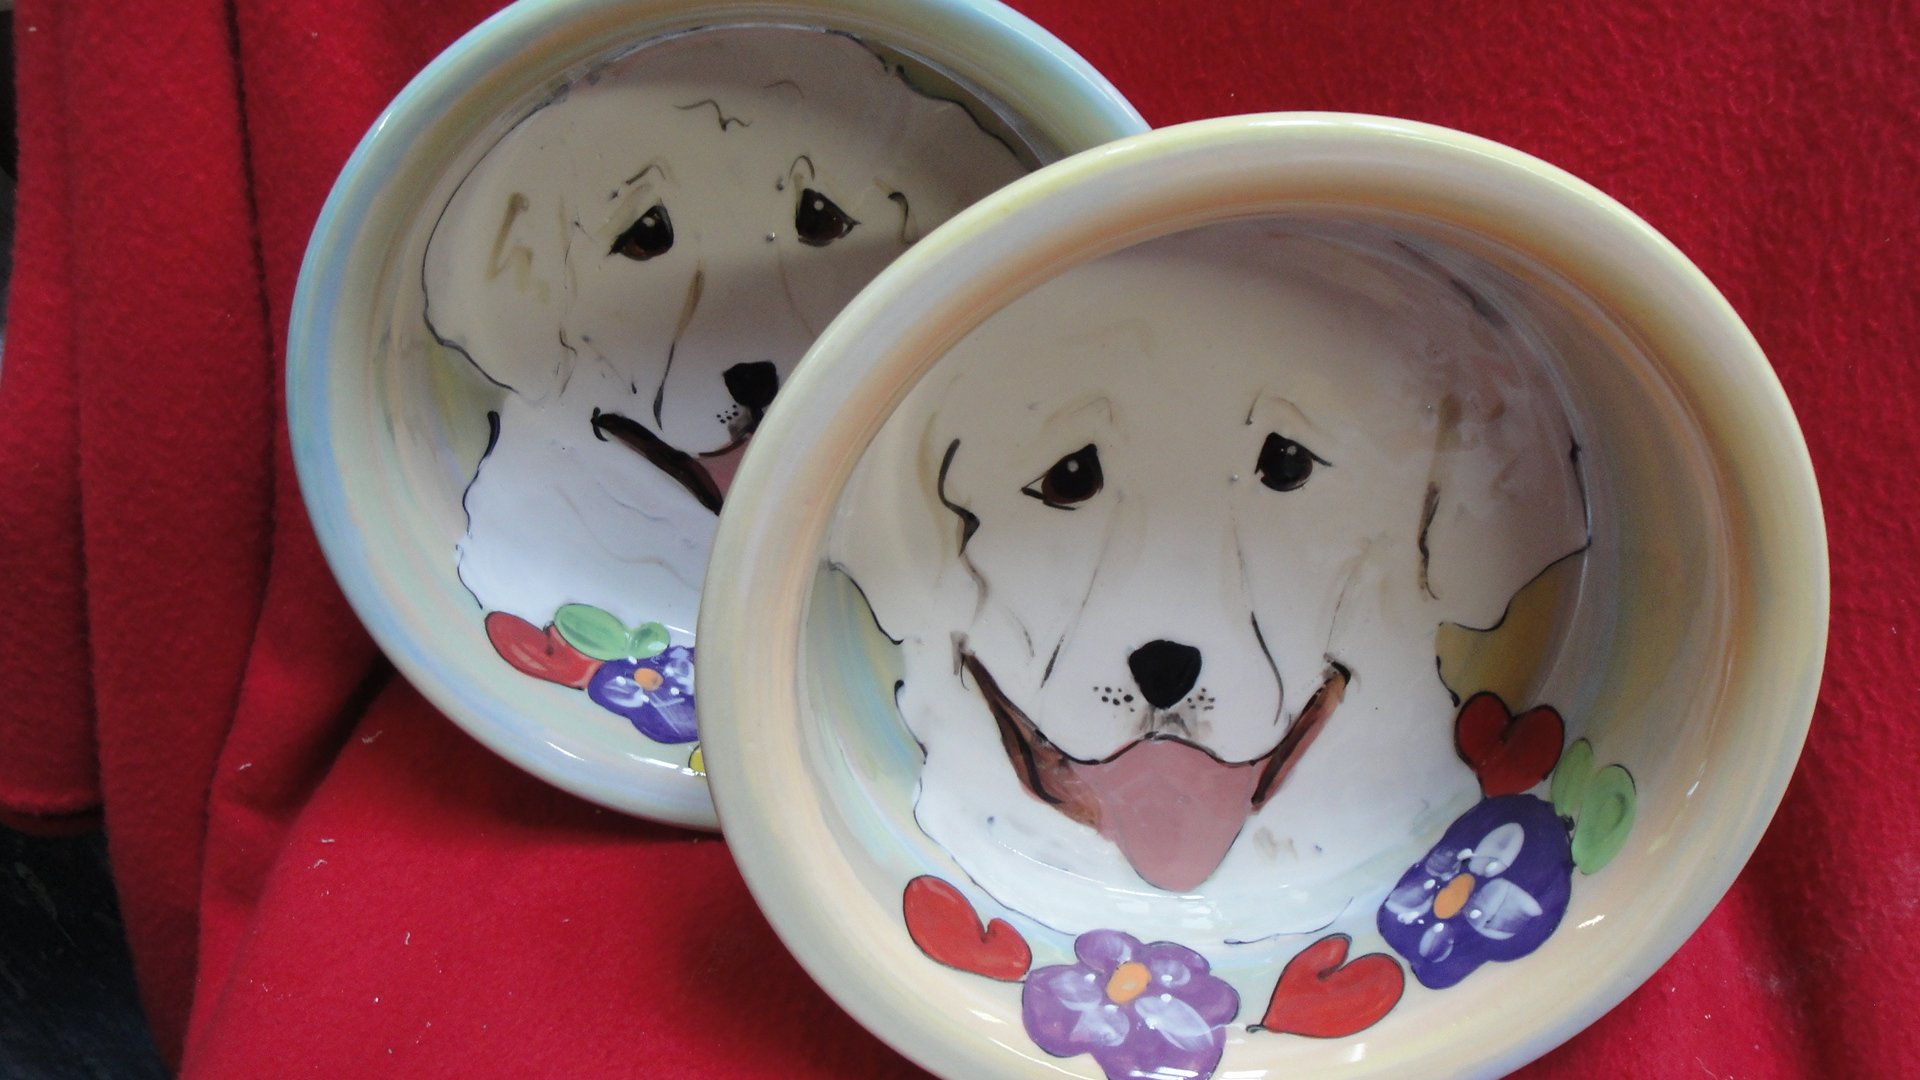 Labrador 8''/6'' Pet Bowls for Food/Water. Personalized at no Charge. Signed by Artist, Debby Carman.